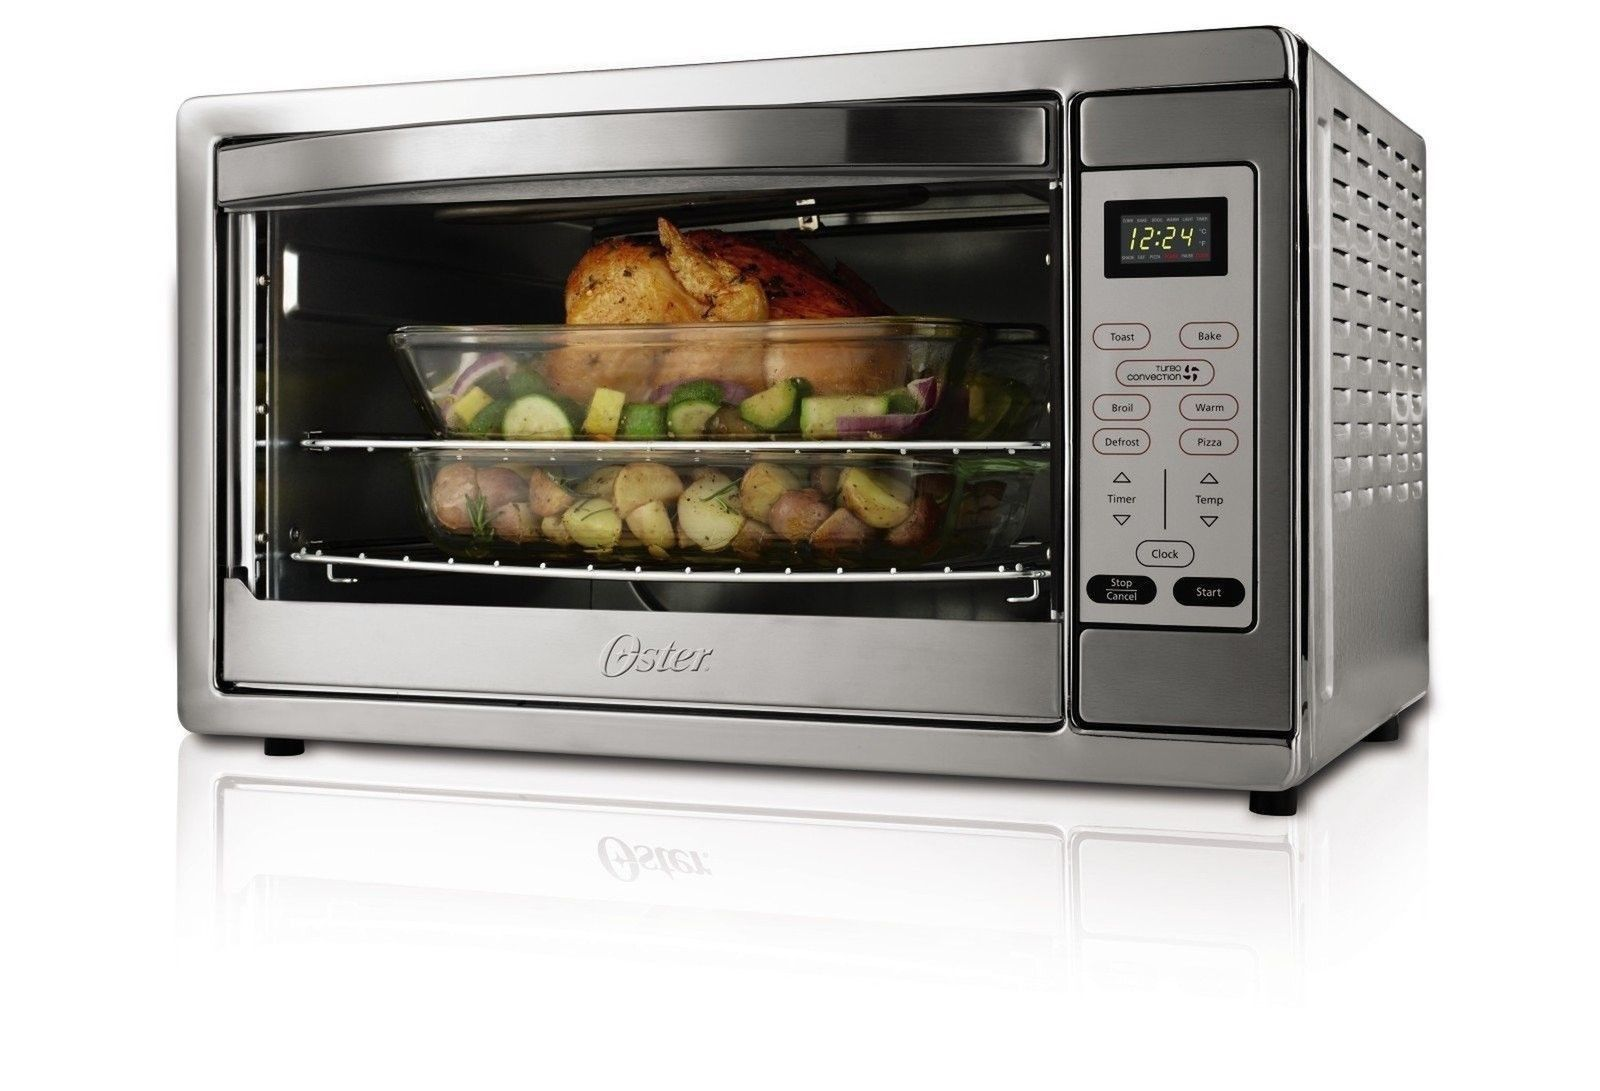 Oster Extra Large Digital Countertop Oven Stainless Steel